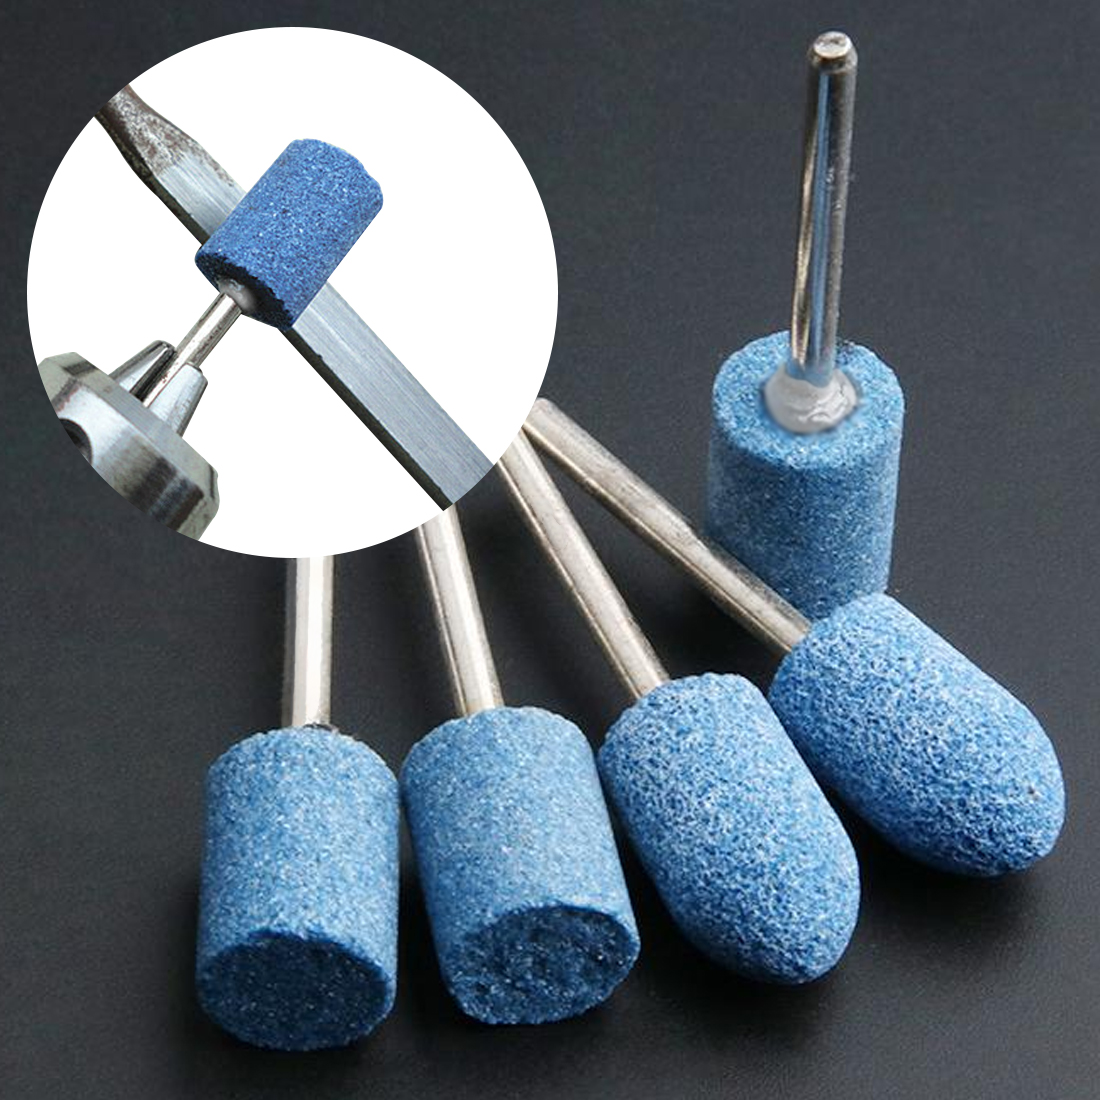 10pcs Rotary Tool Abrasive Polishing Mounted Stone Grinding Wheel With 1/8 Shank For Grinding Polishing  Power Tools New